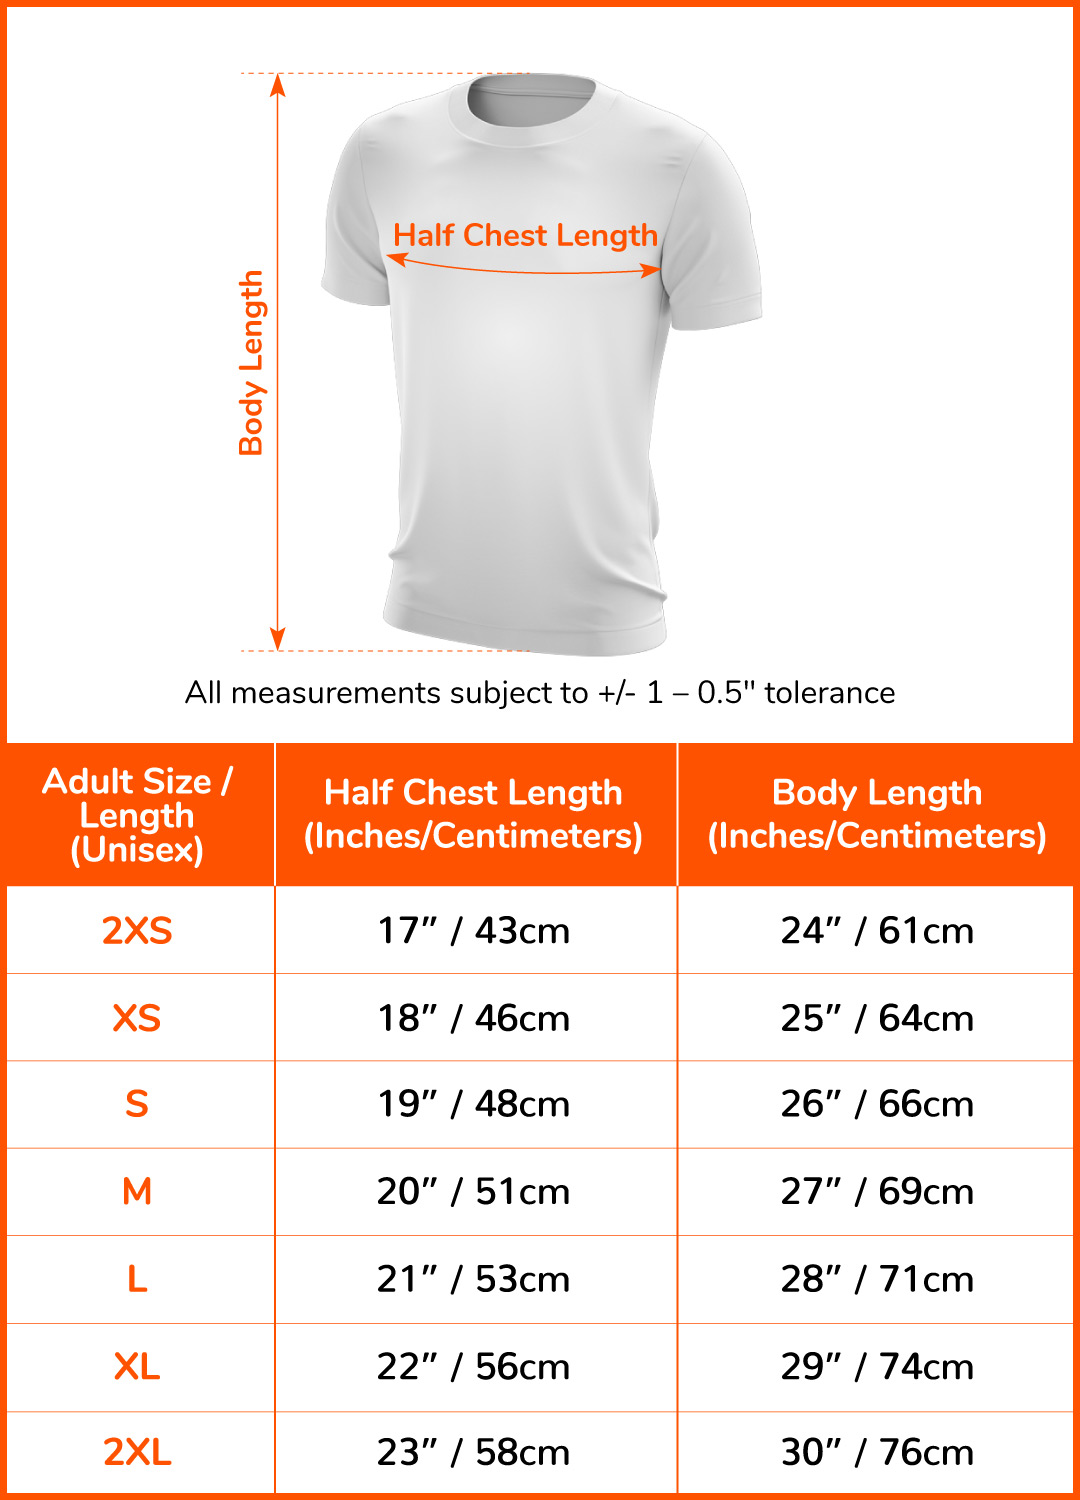 Finisher T-Shirt - 63km#size-chart